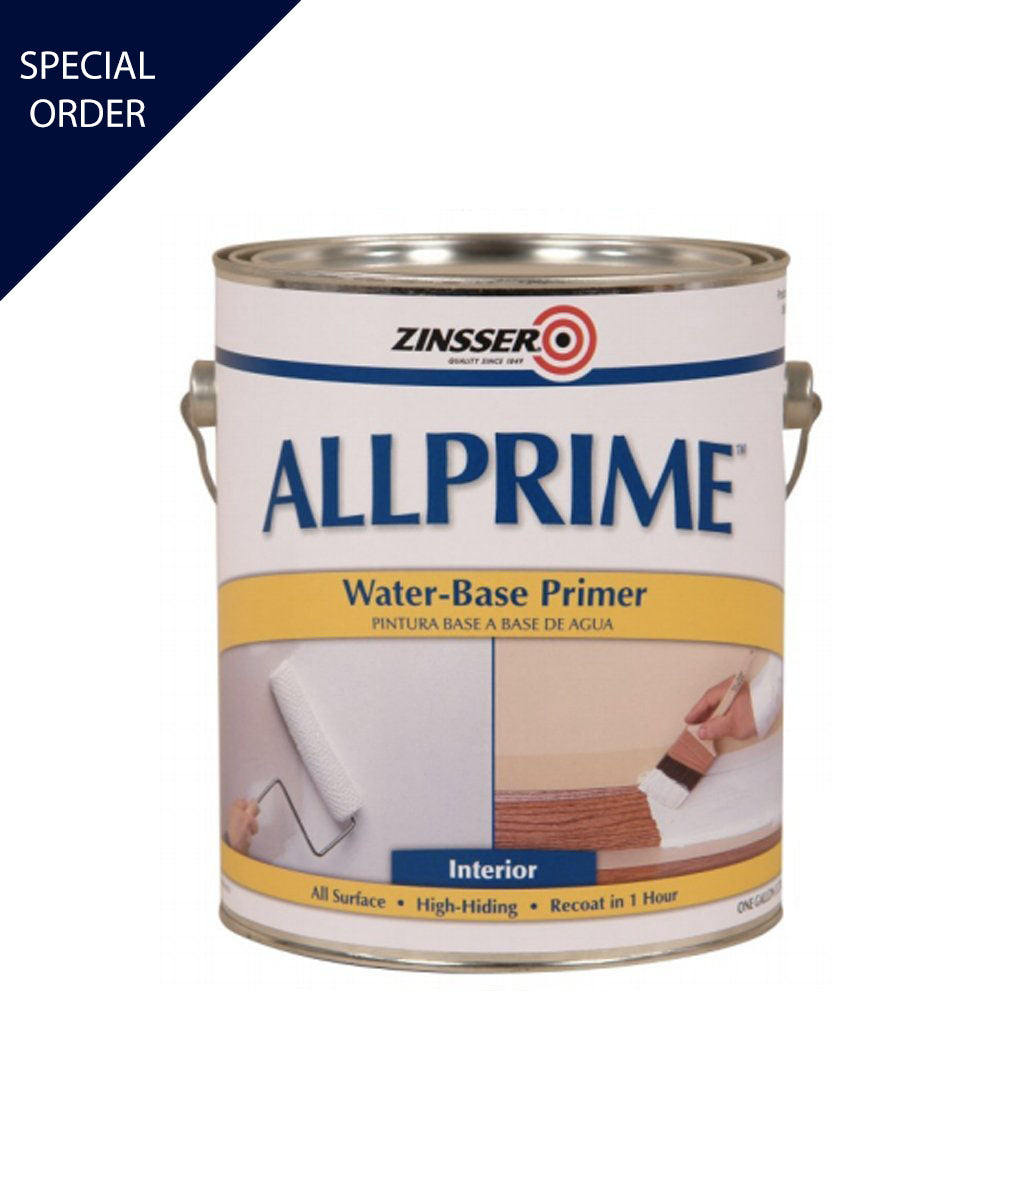 Allprime water base primer, available at Mallory Paint Store in WA & ID.